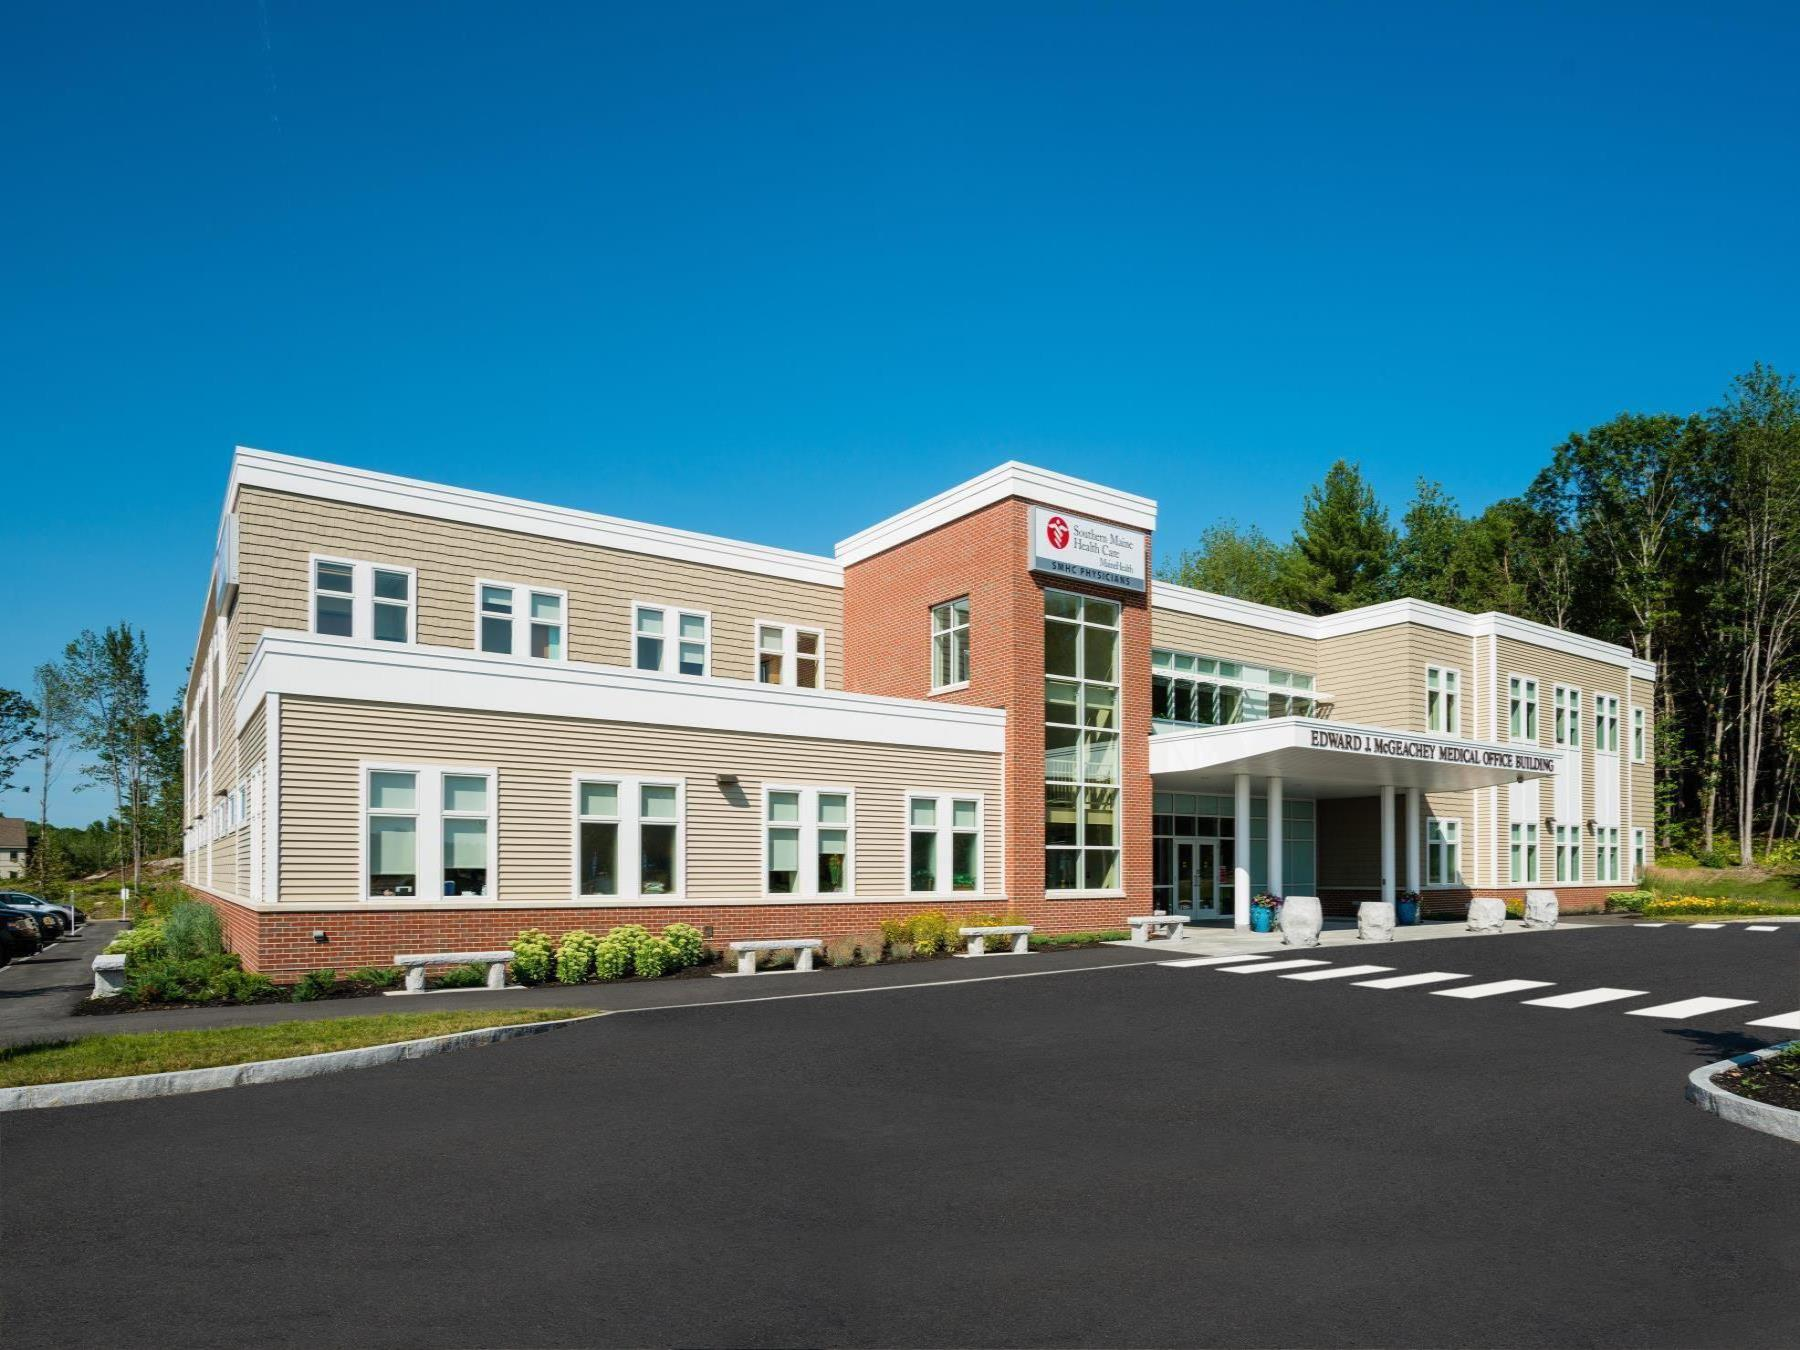 Southern Maine Health Care Is Located At 46 Barra Rd. Suites 201/202, Biddeford, ME